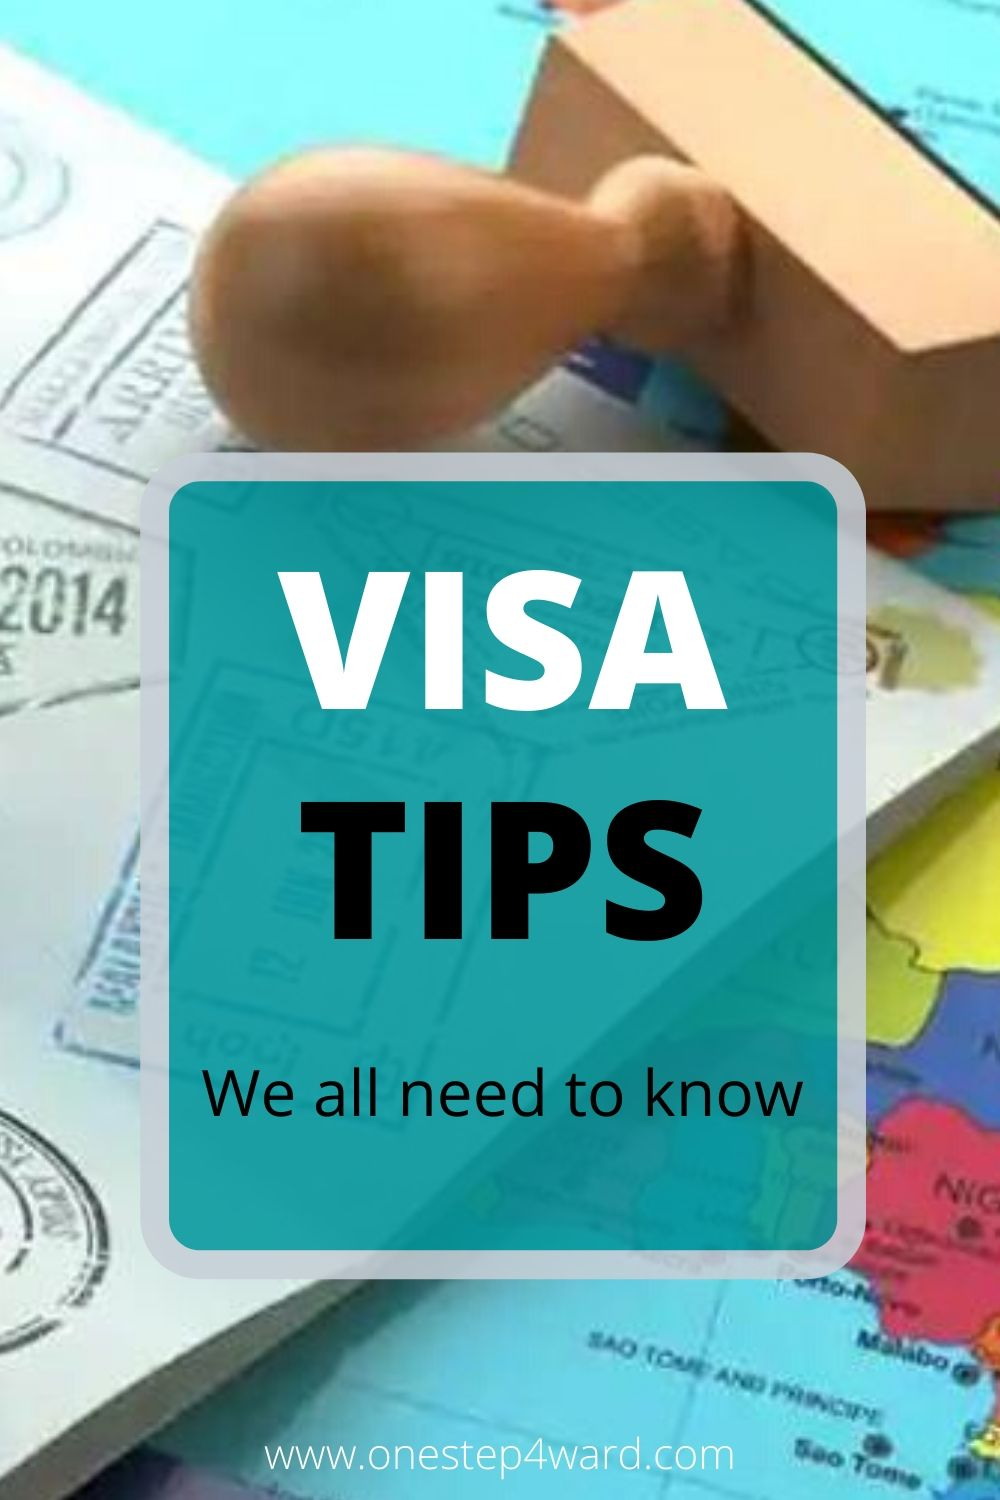 Visa tips we all need to know